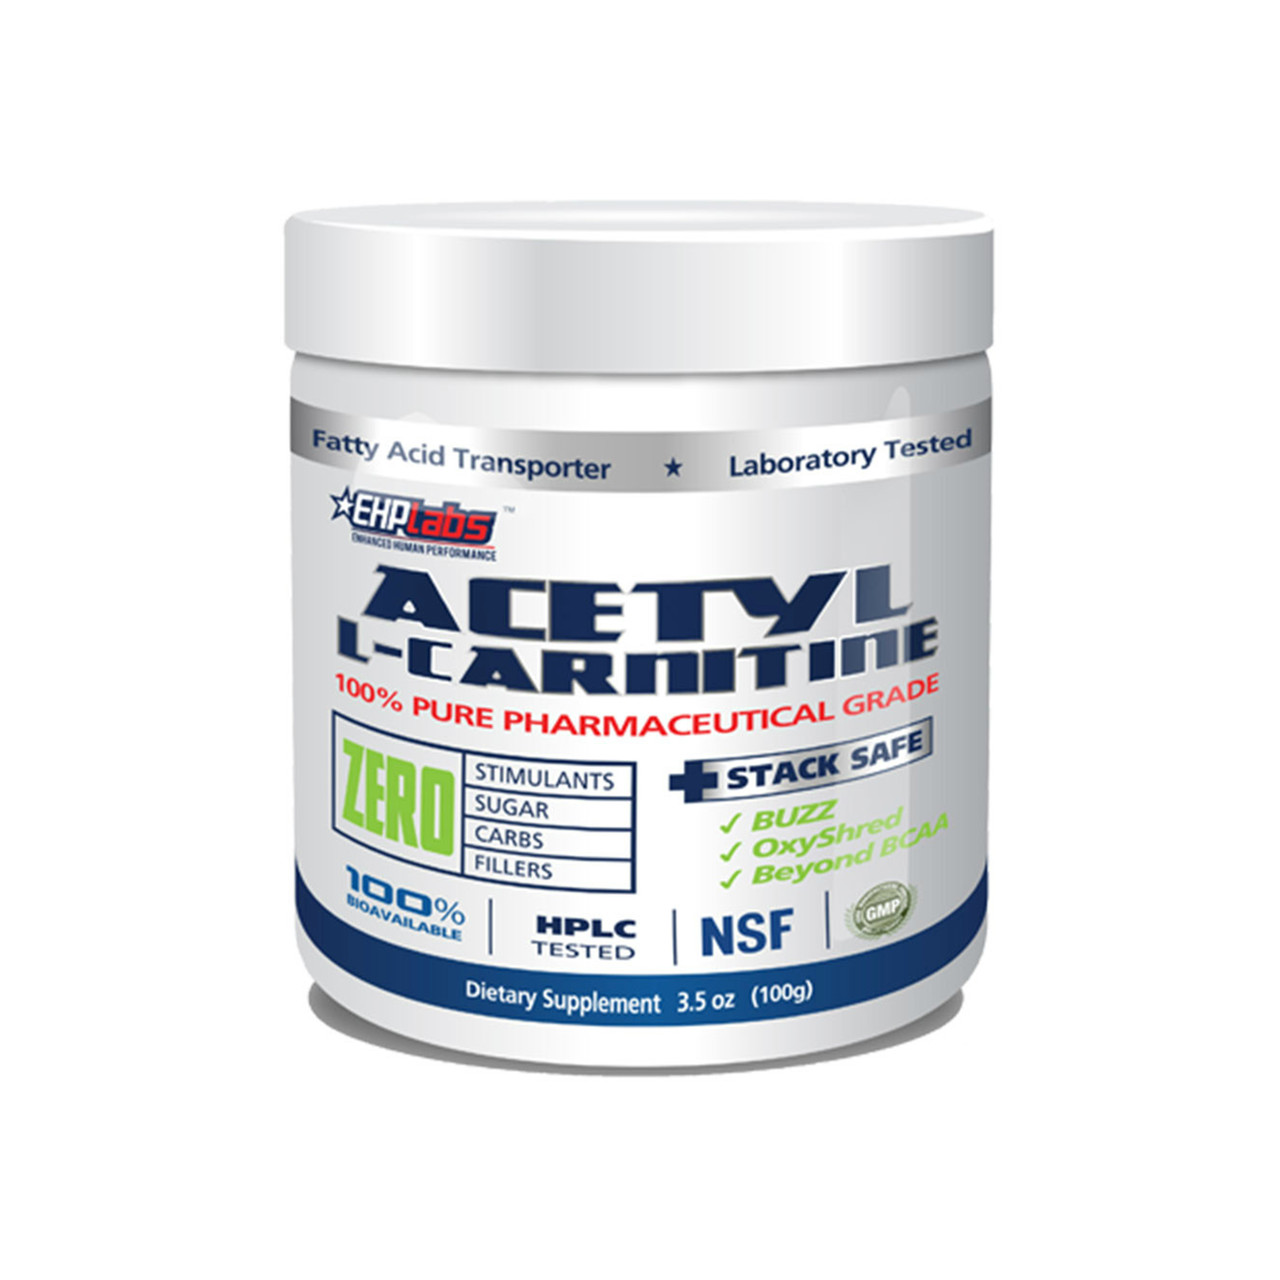 Acetyl L Carnitine Fat Loss